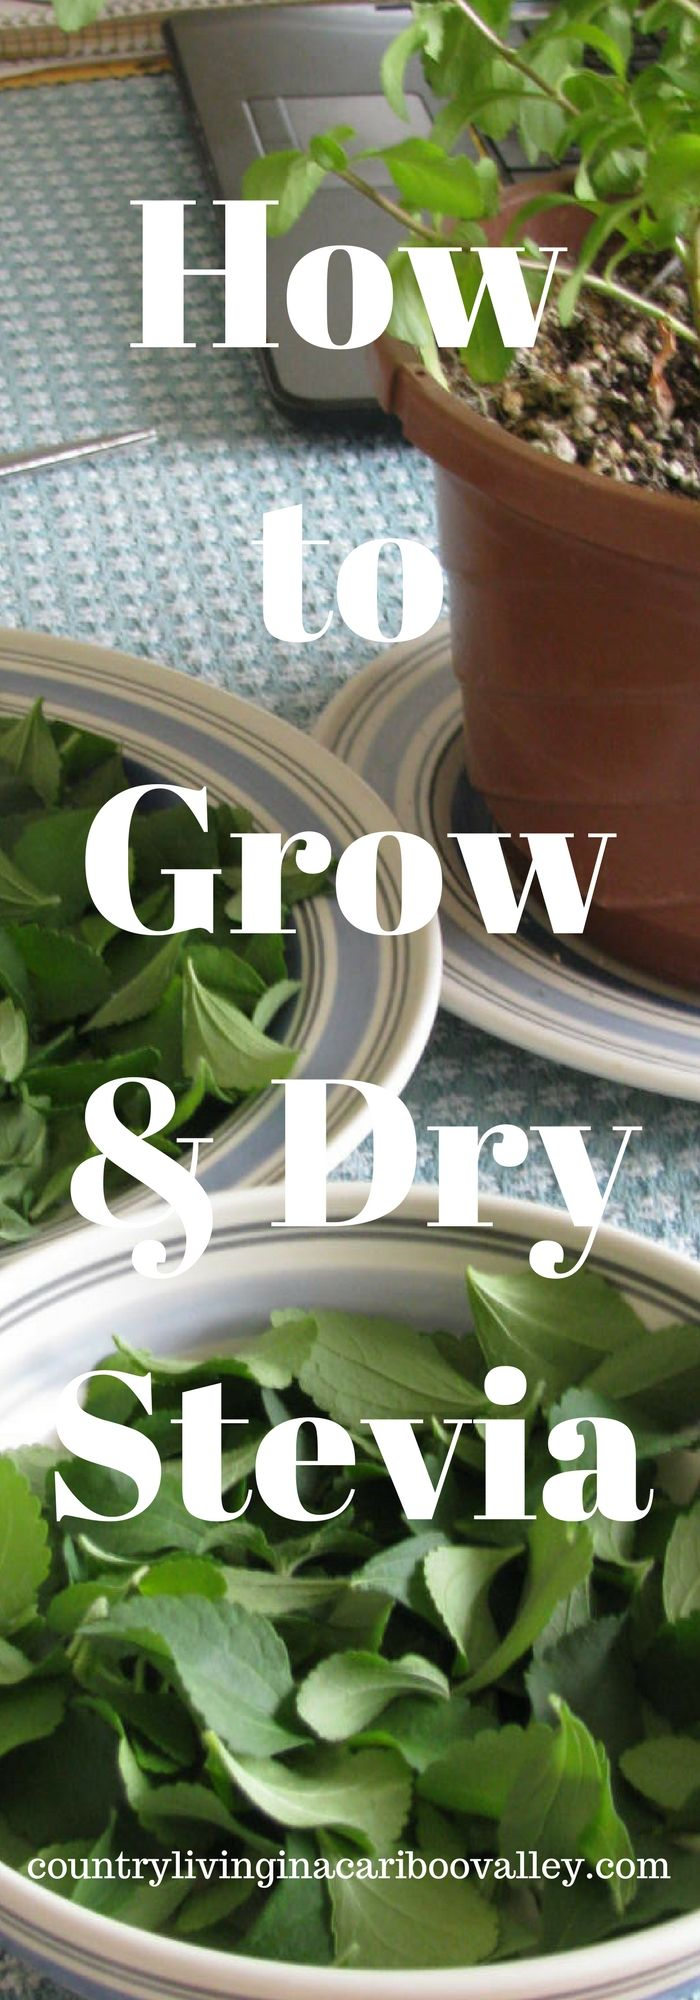 Growing Stevia How To Plant Grow And Harvest Stevia: A Healthy Sugar Substitute